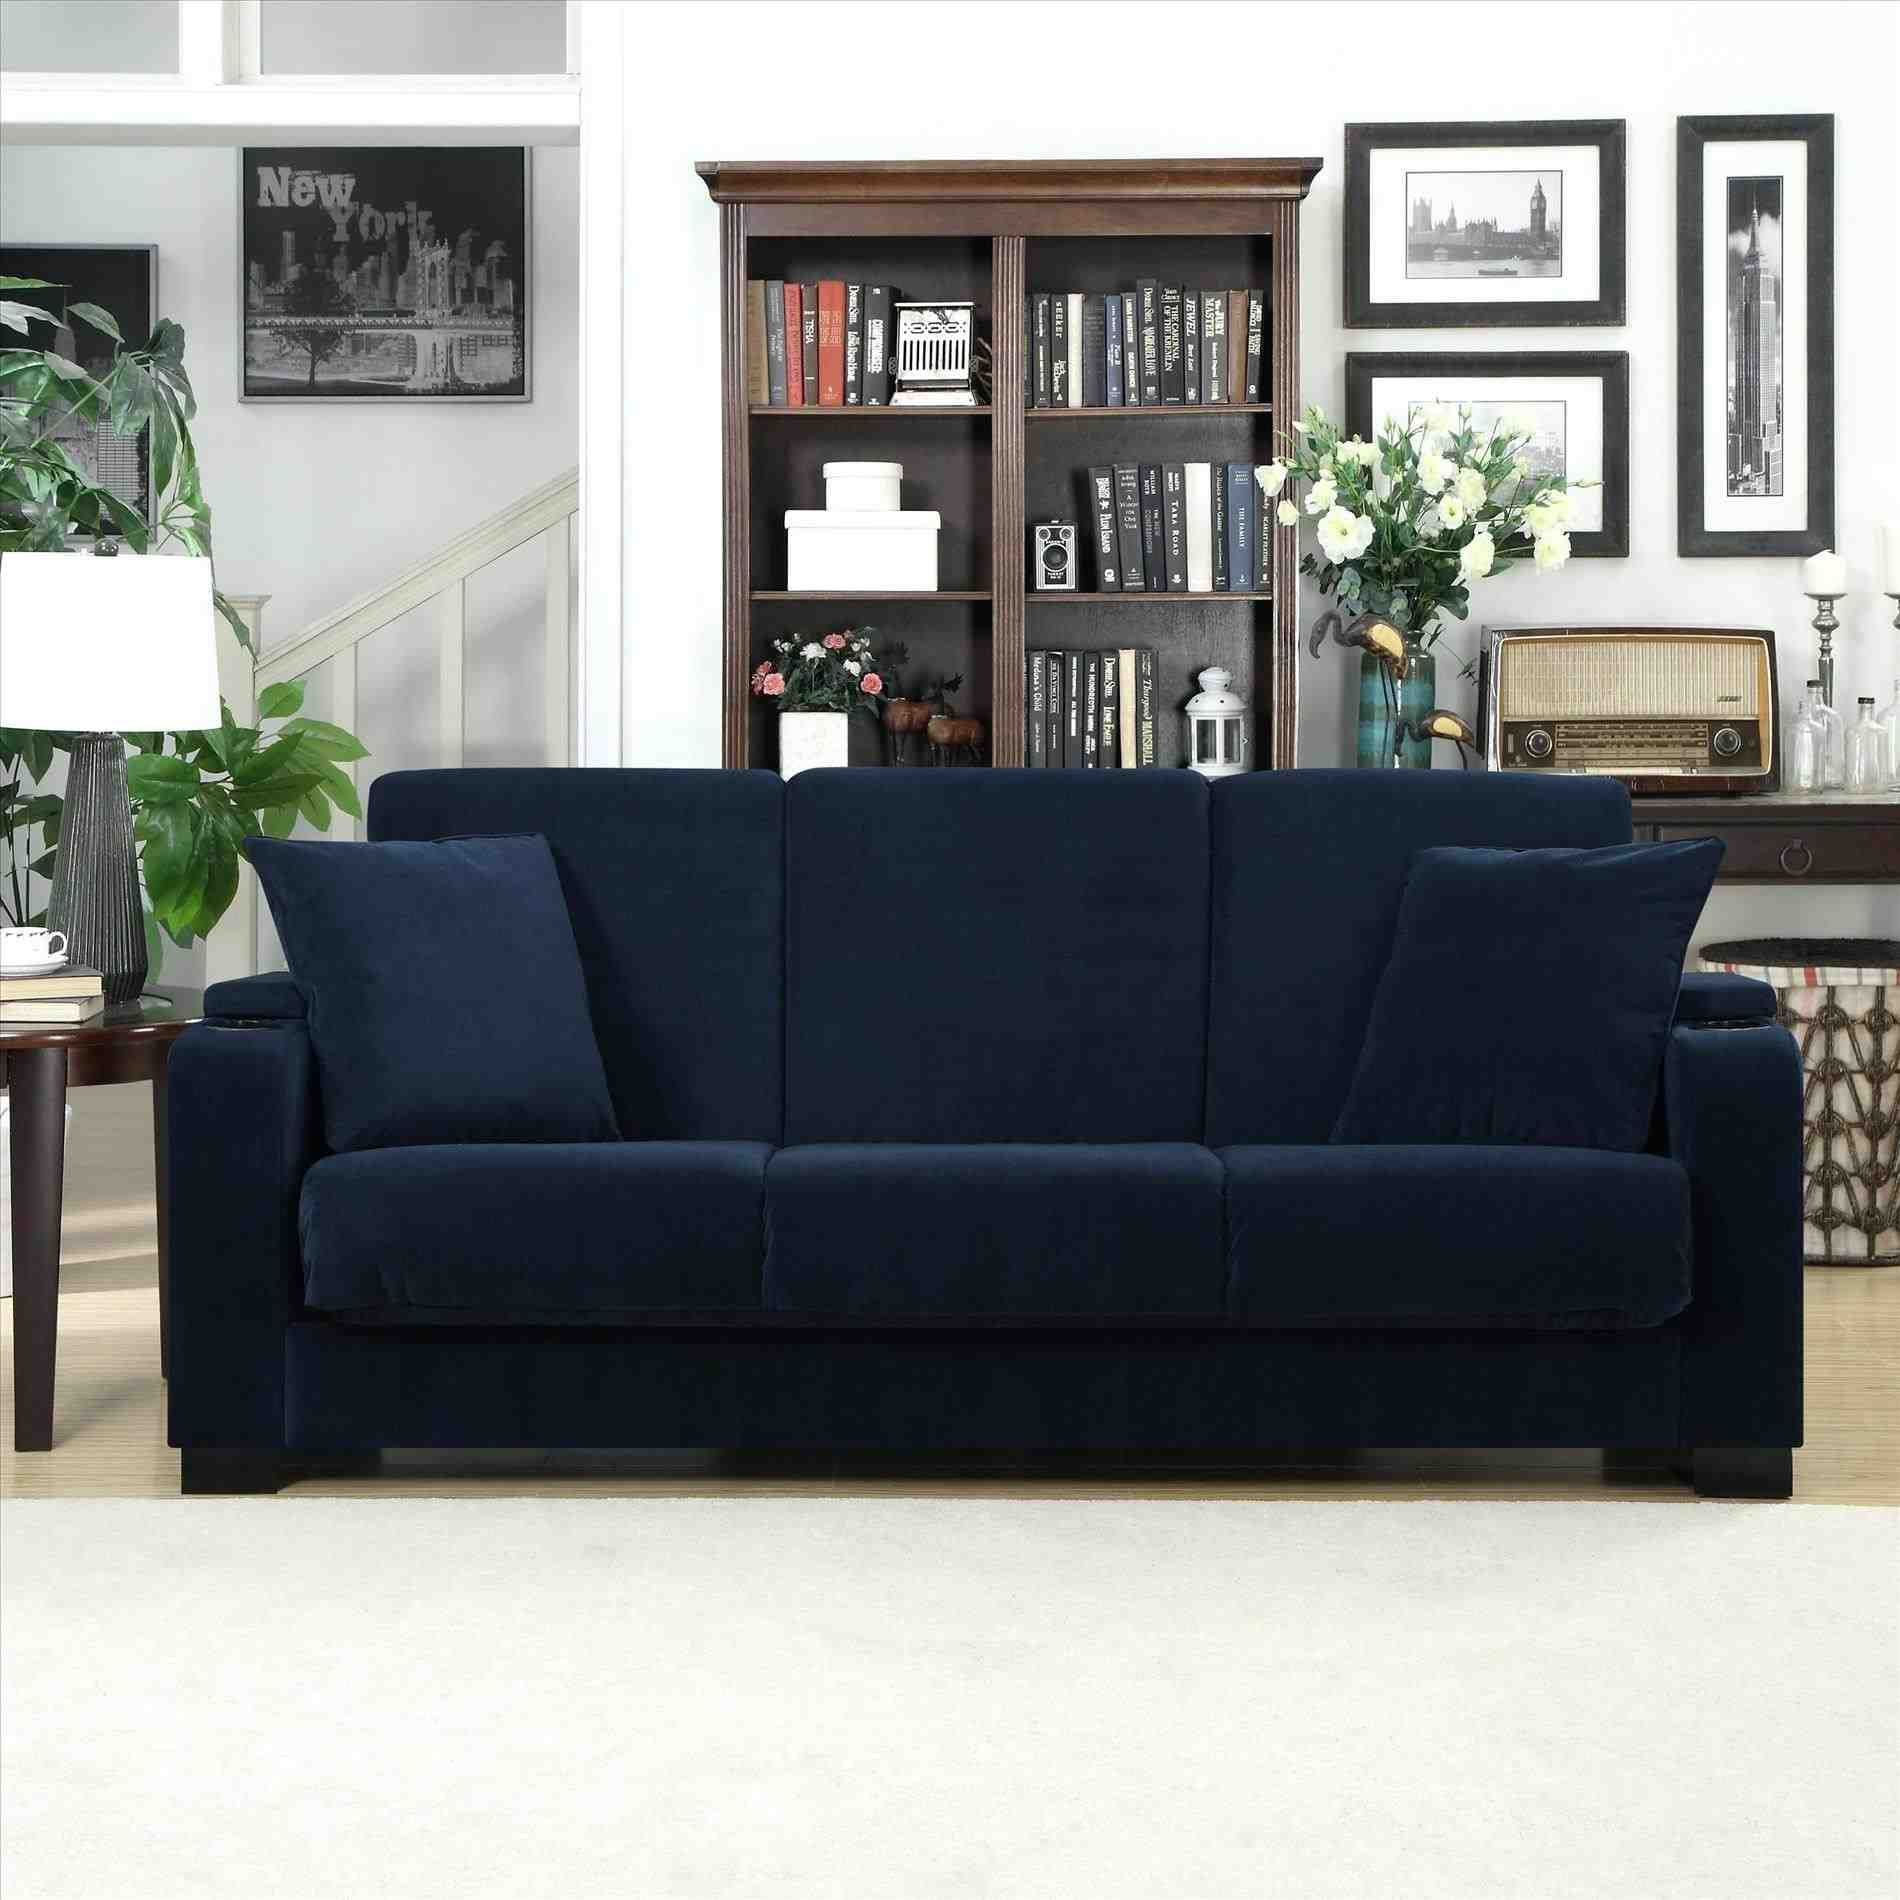 . Cheap Sofa Deals Uk   living room chairs cheap furniture prices in